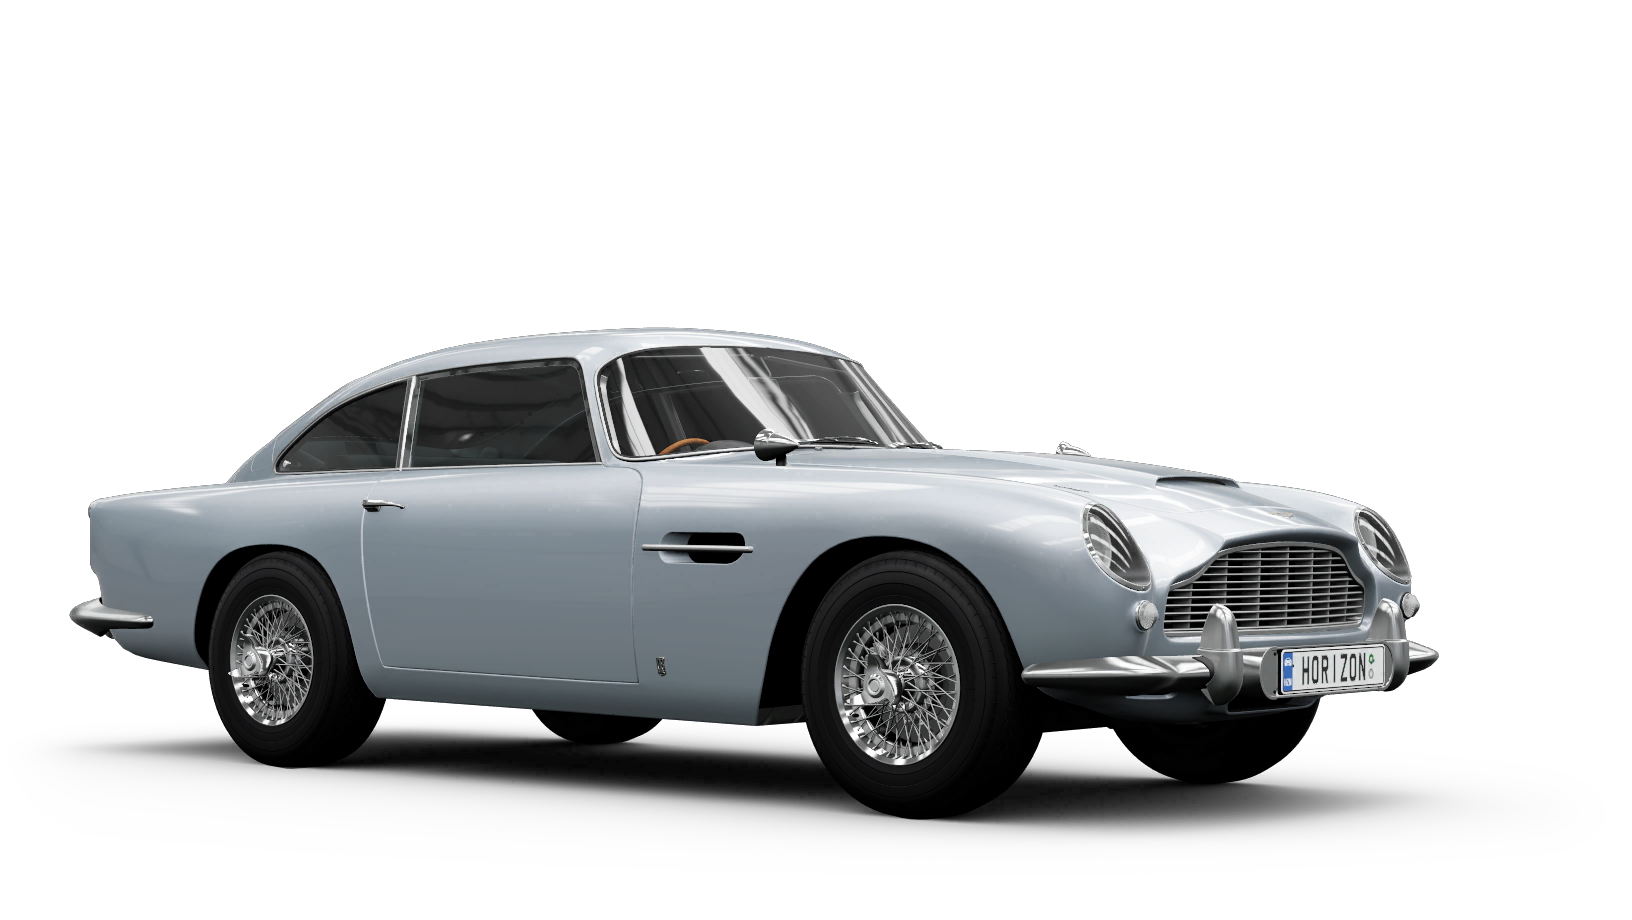 James Bond Edition Aston Martin DB5